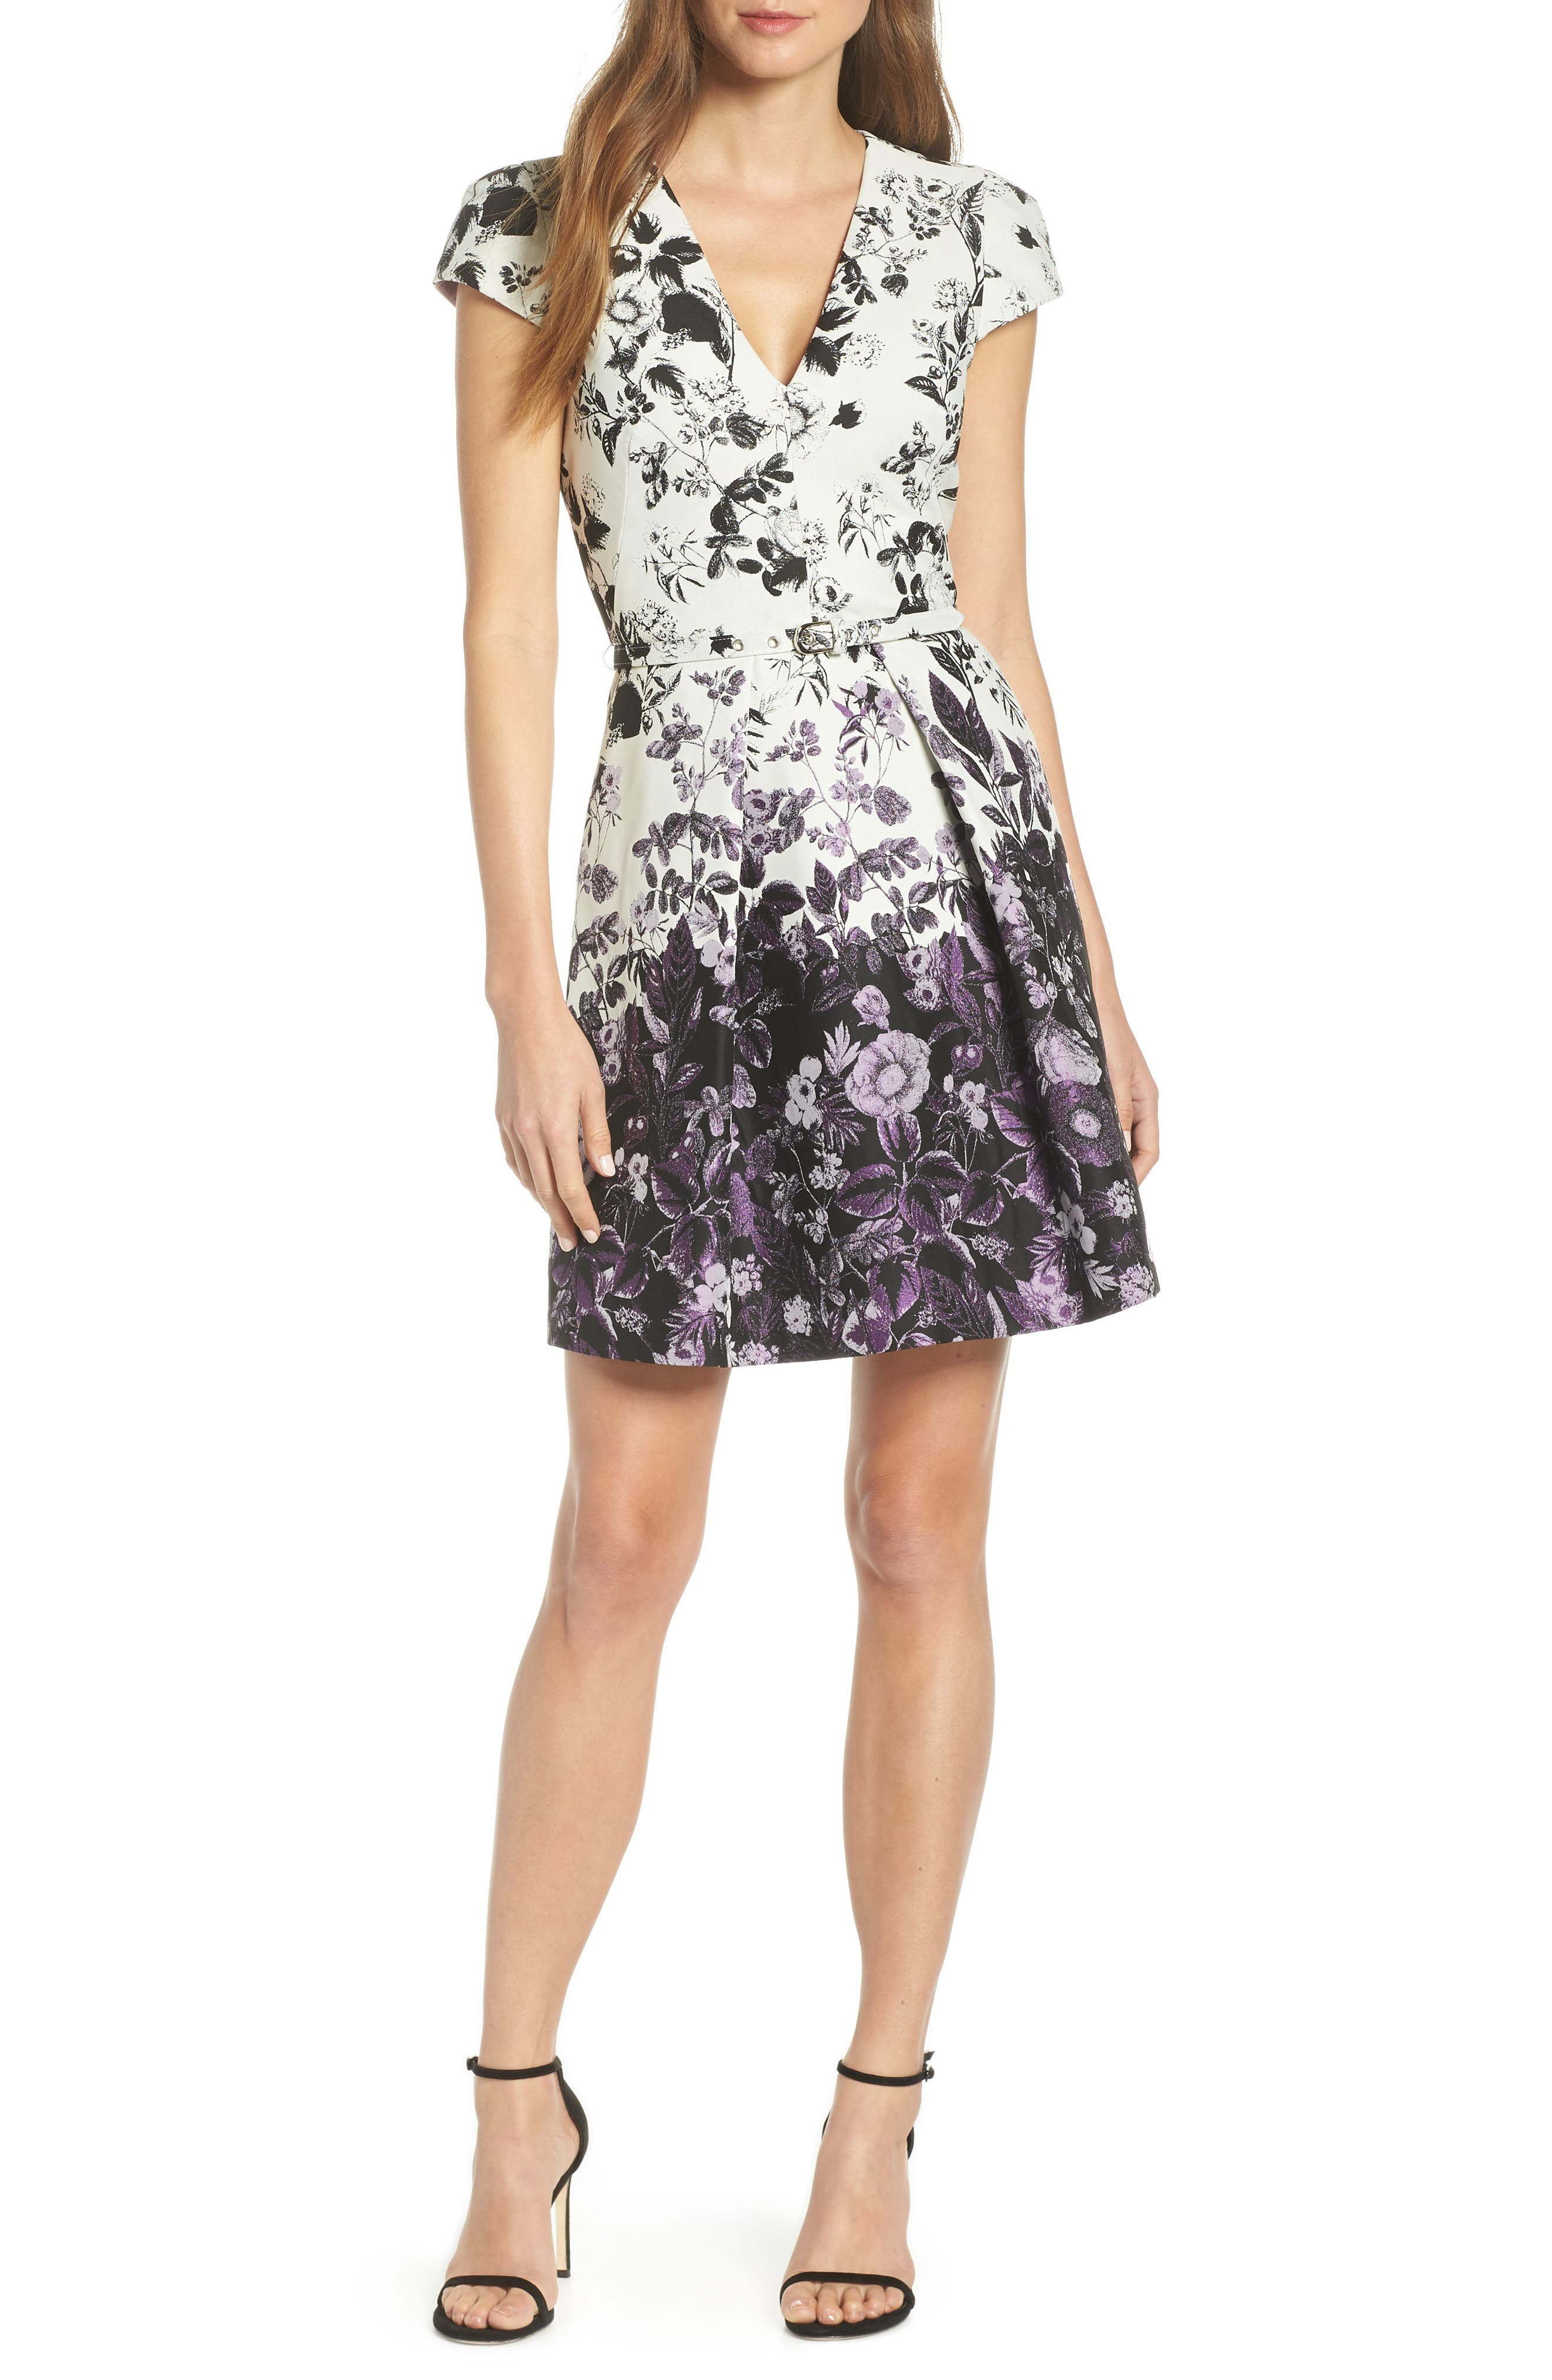 VINCE CAMUTO, Floral Jacquard Fit and Flare Dress, Main thumbnail 1, color, PURPLE MULTI